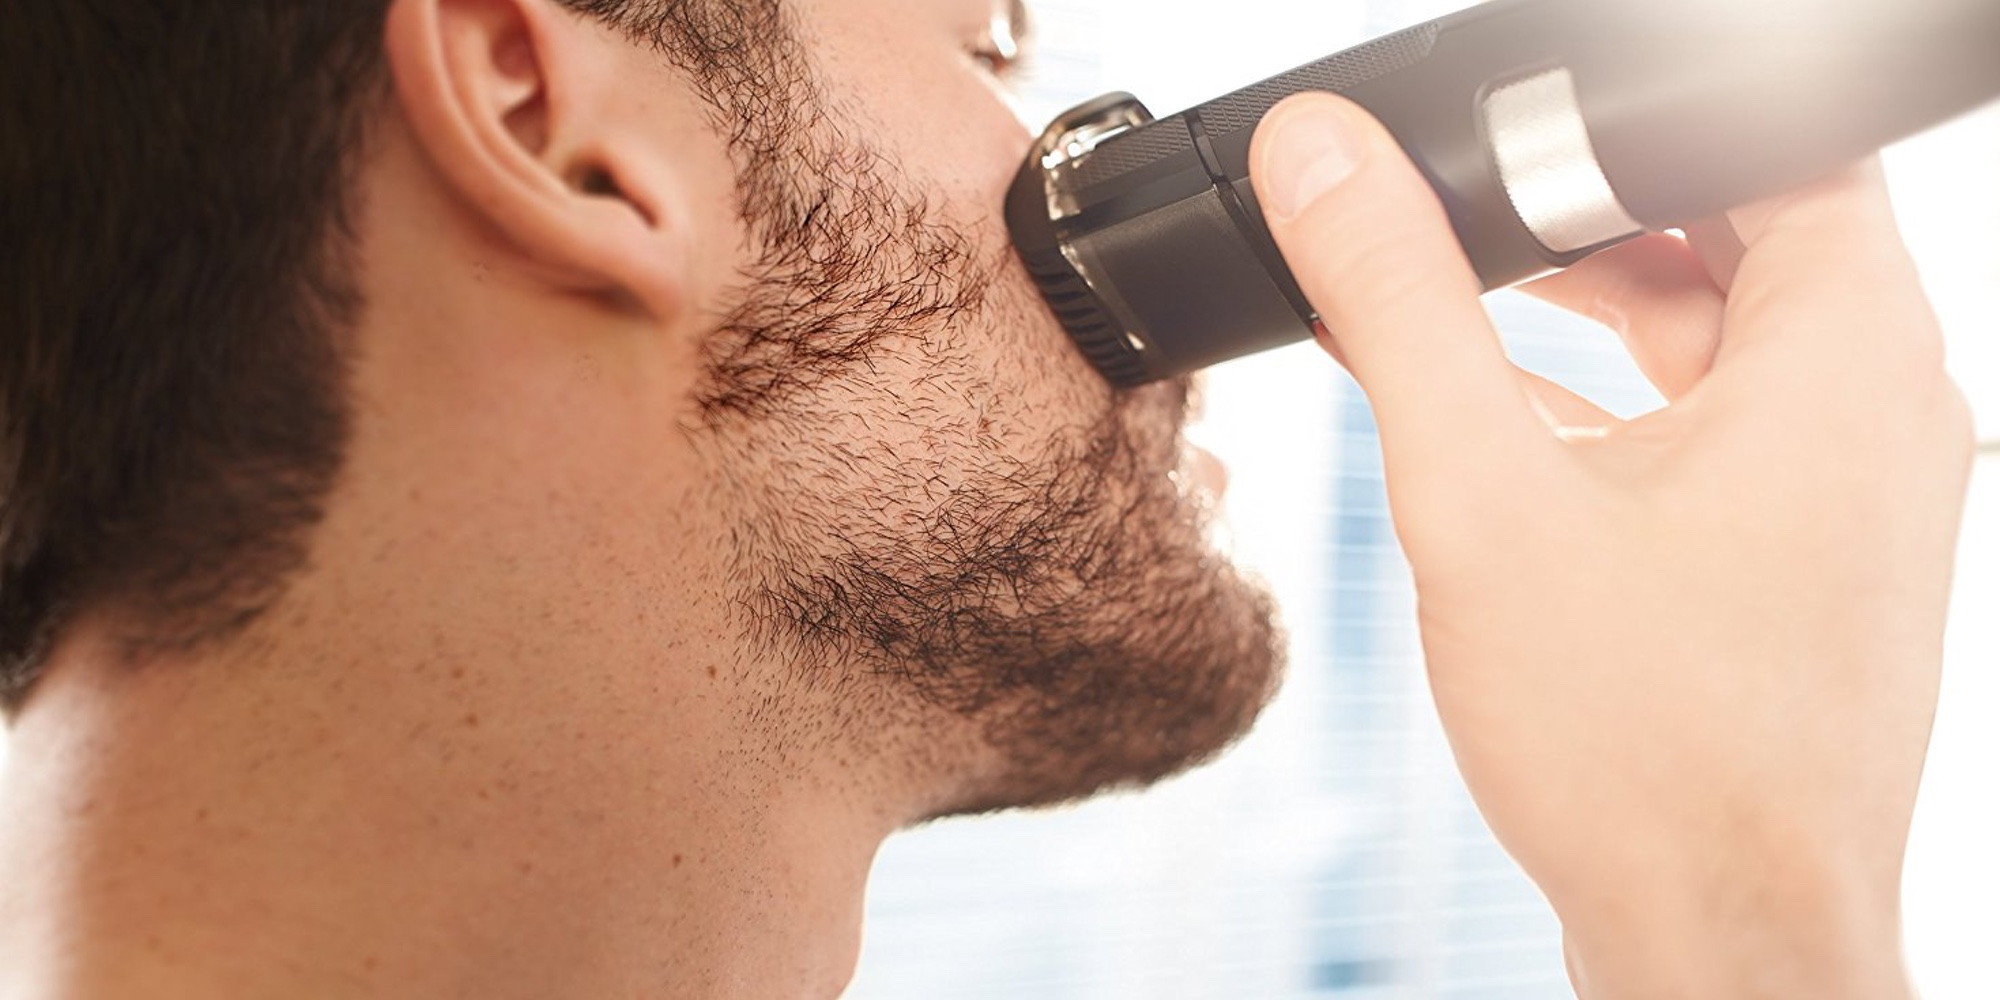 Get a better shave with the Philips Norelco Beard trimmer for $40 (Reg. $65), today only